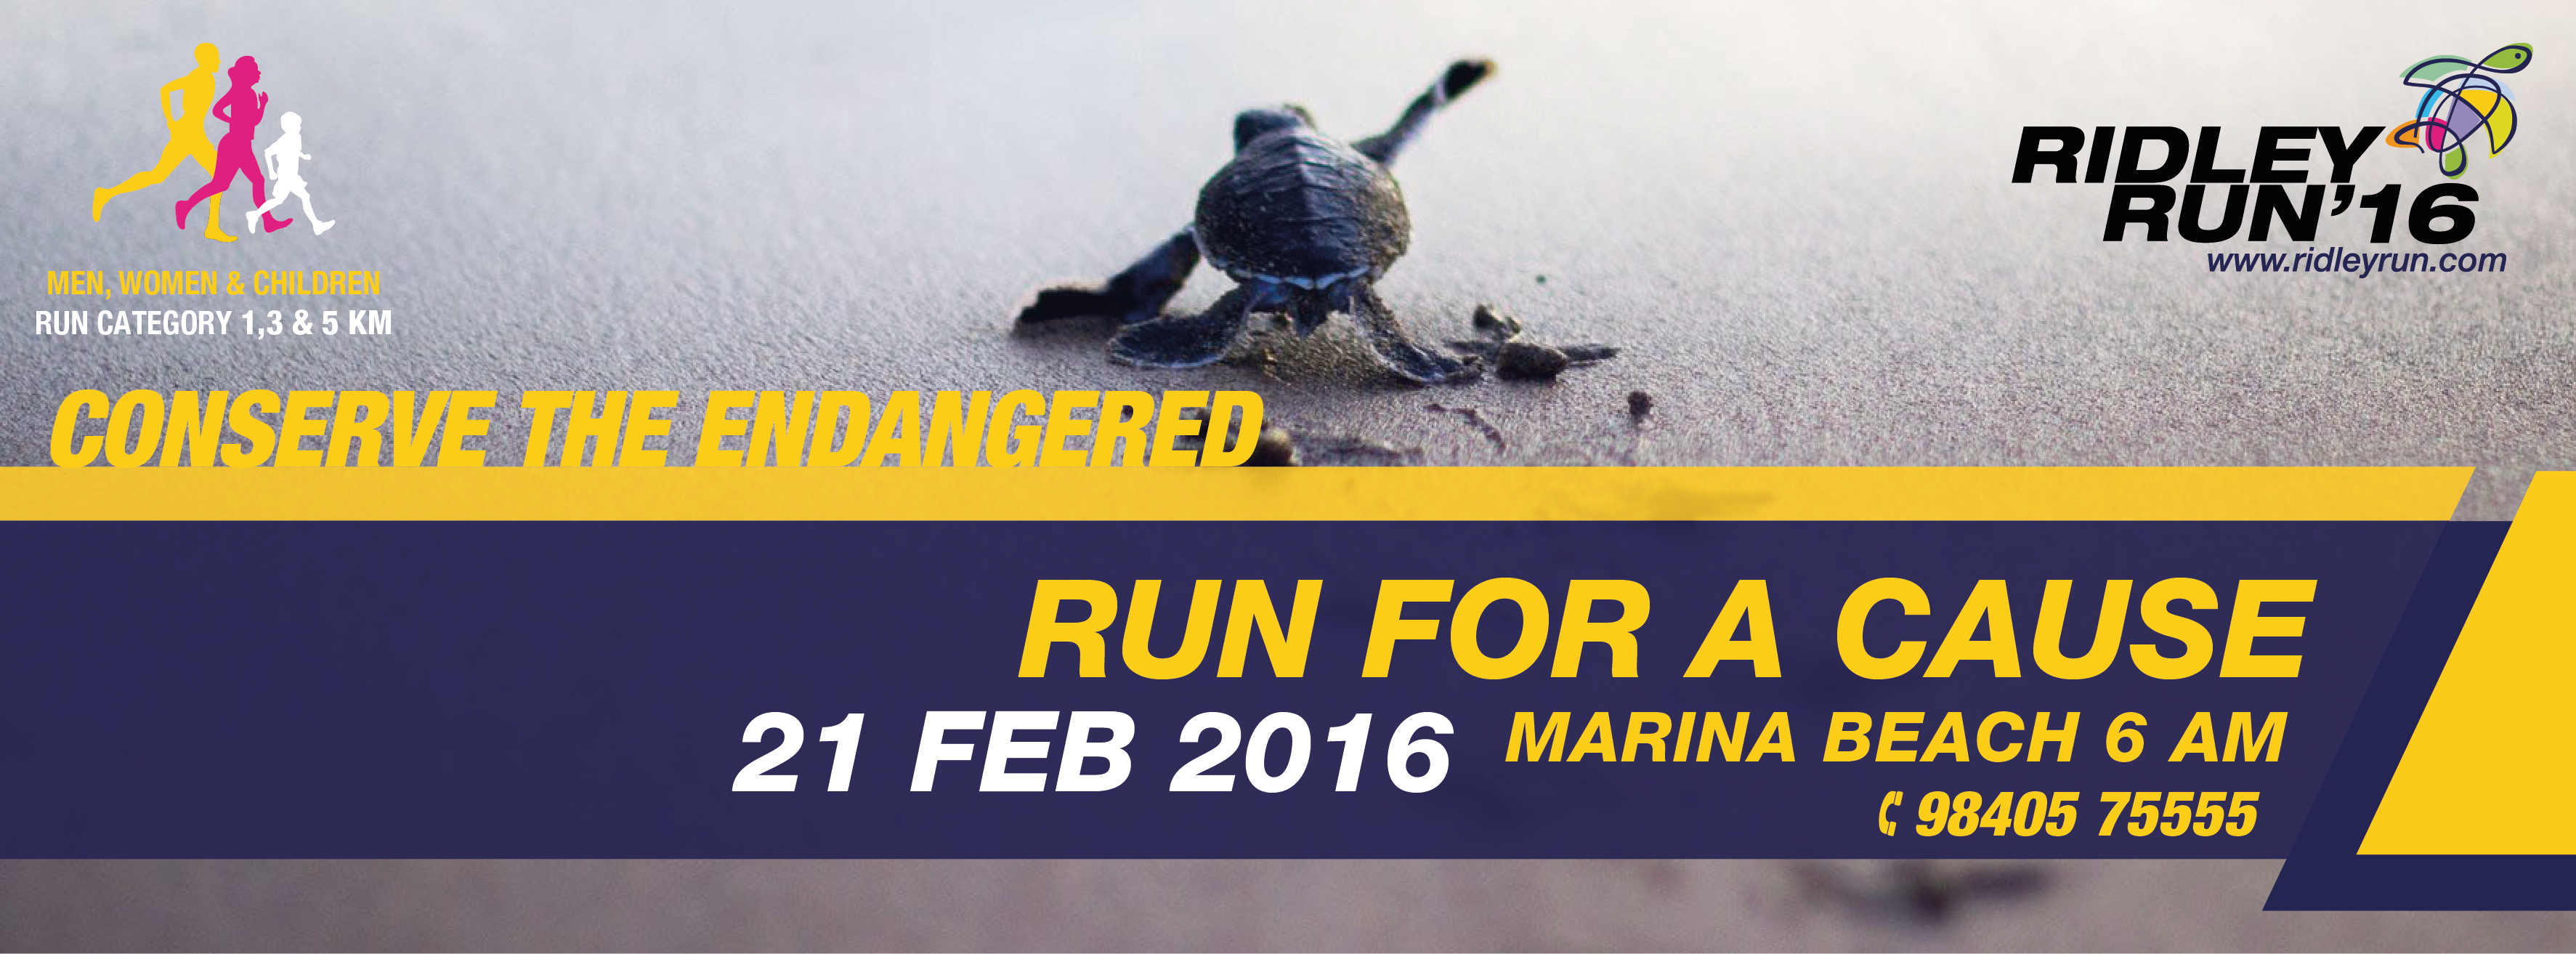 Book Online Tickets for Ridley Run, Chennai. ·         The Ridley Run is aimed at creating awareness of the endangered Olive Ridley Turtles